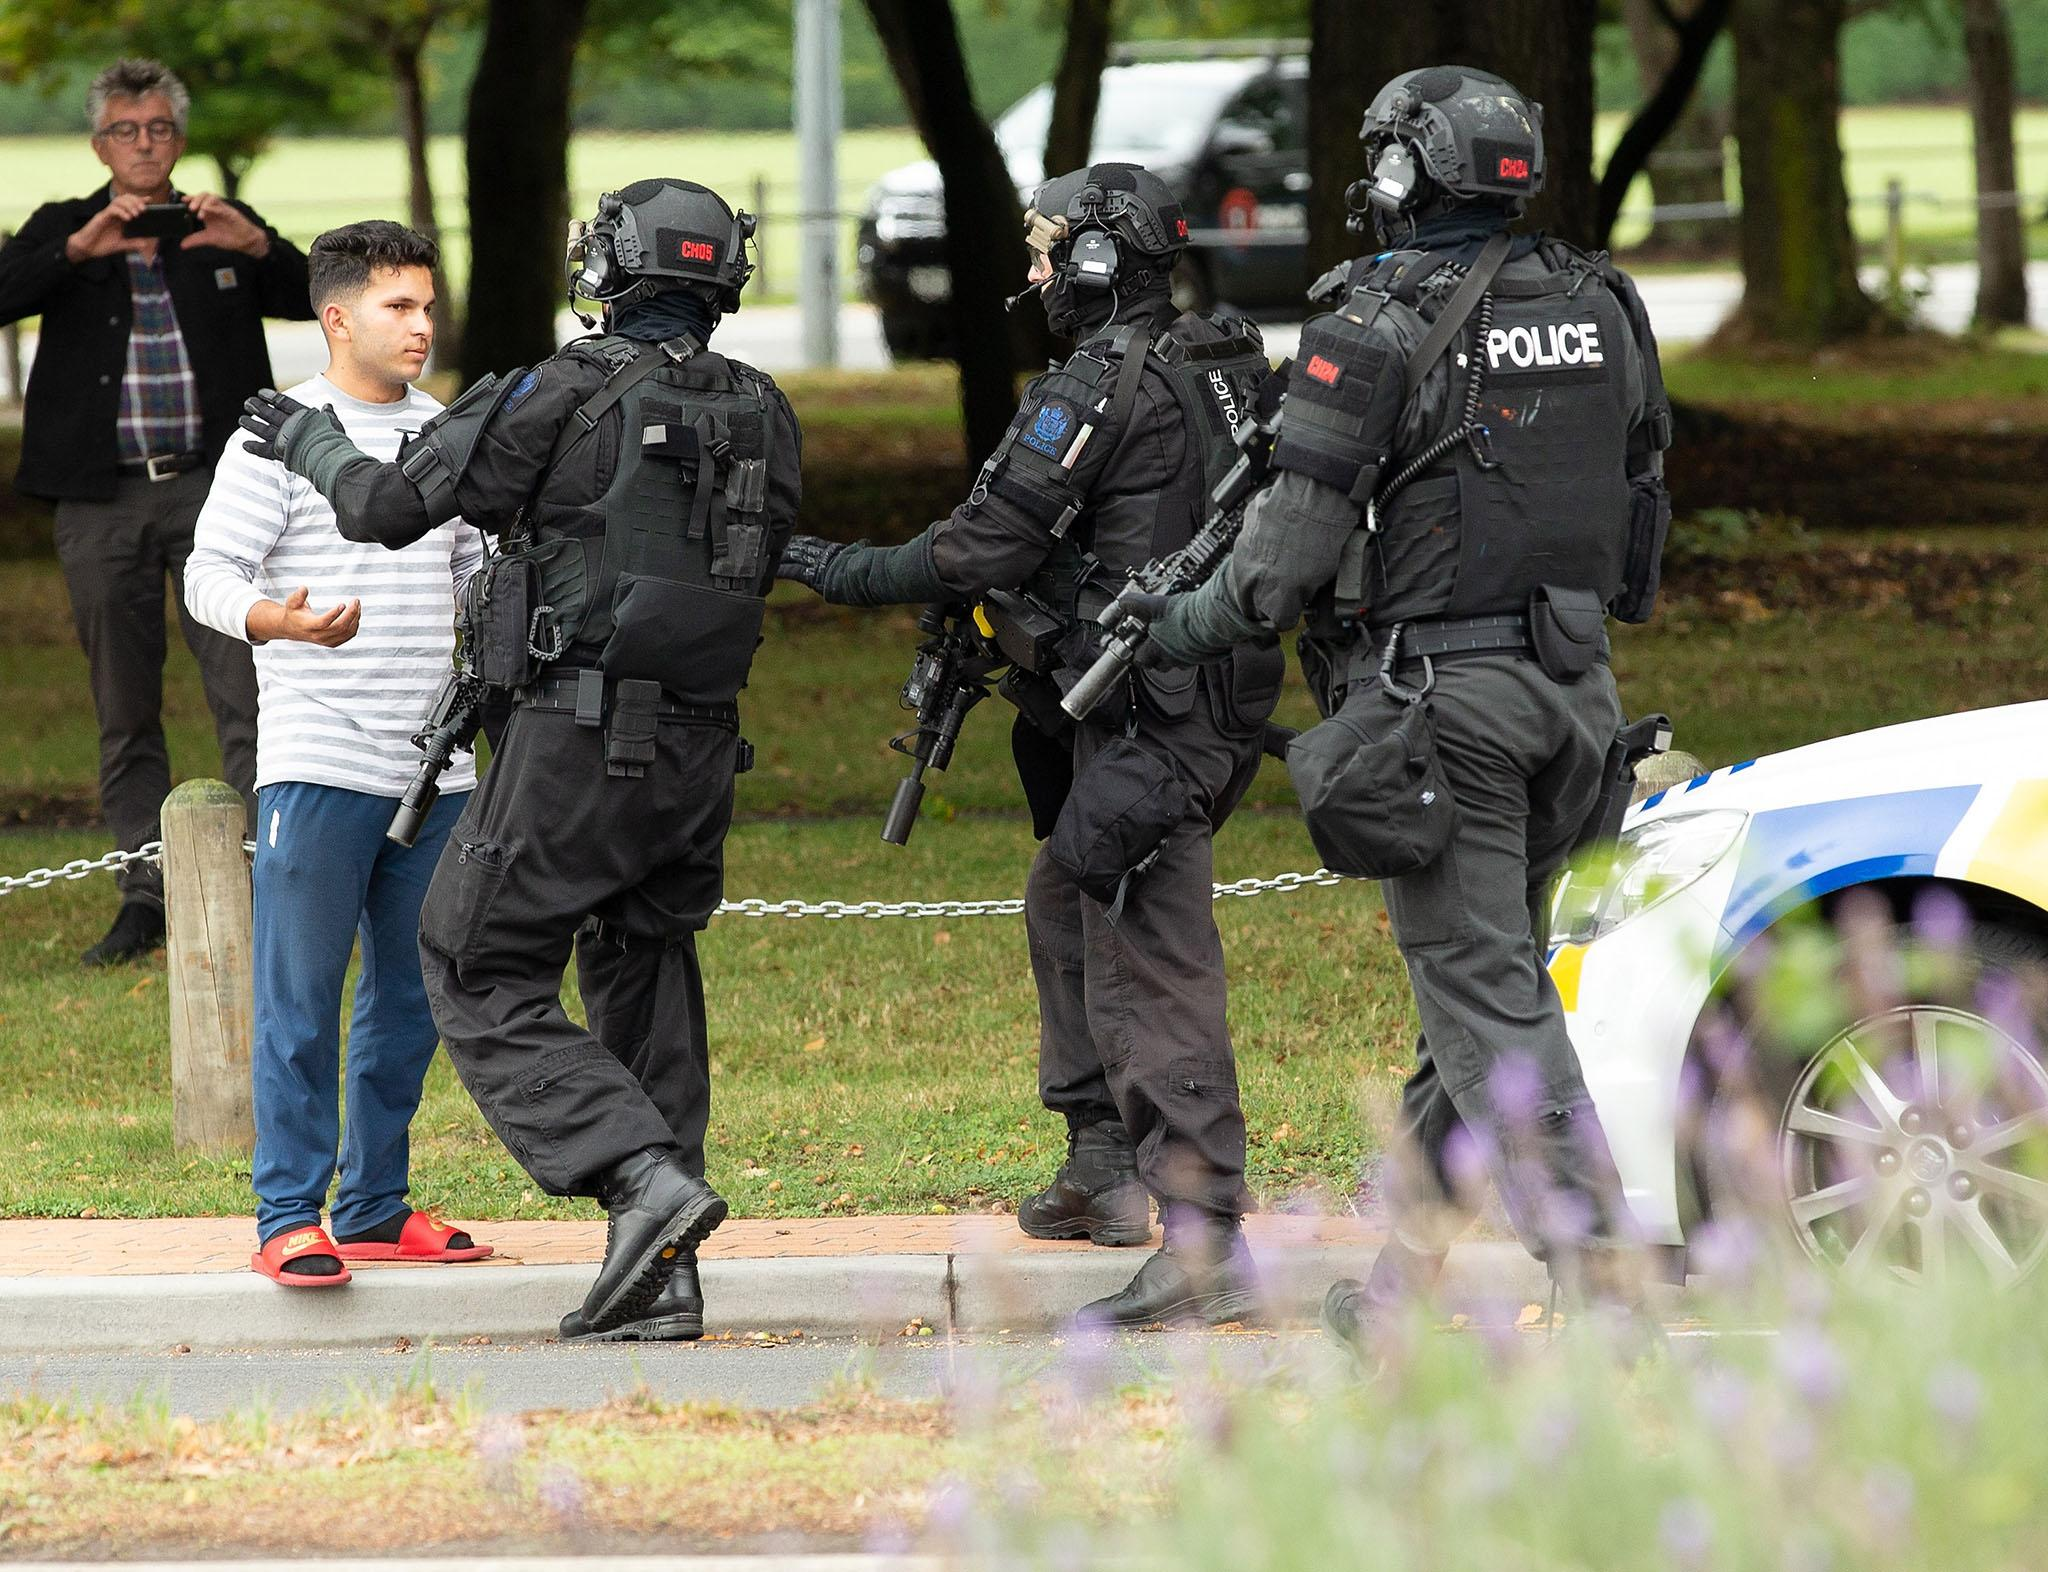 New Zealand attack - live updates: Suspected gunman appears in court